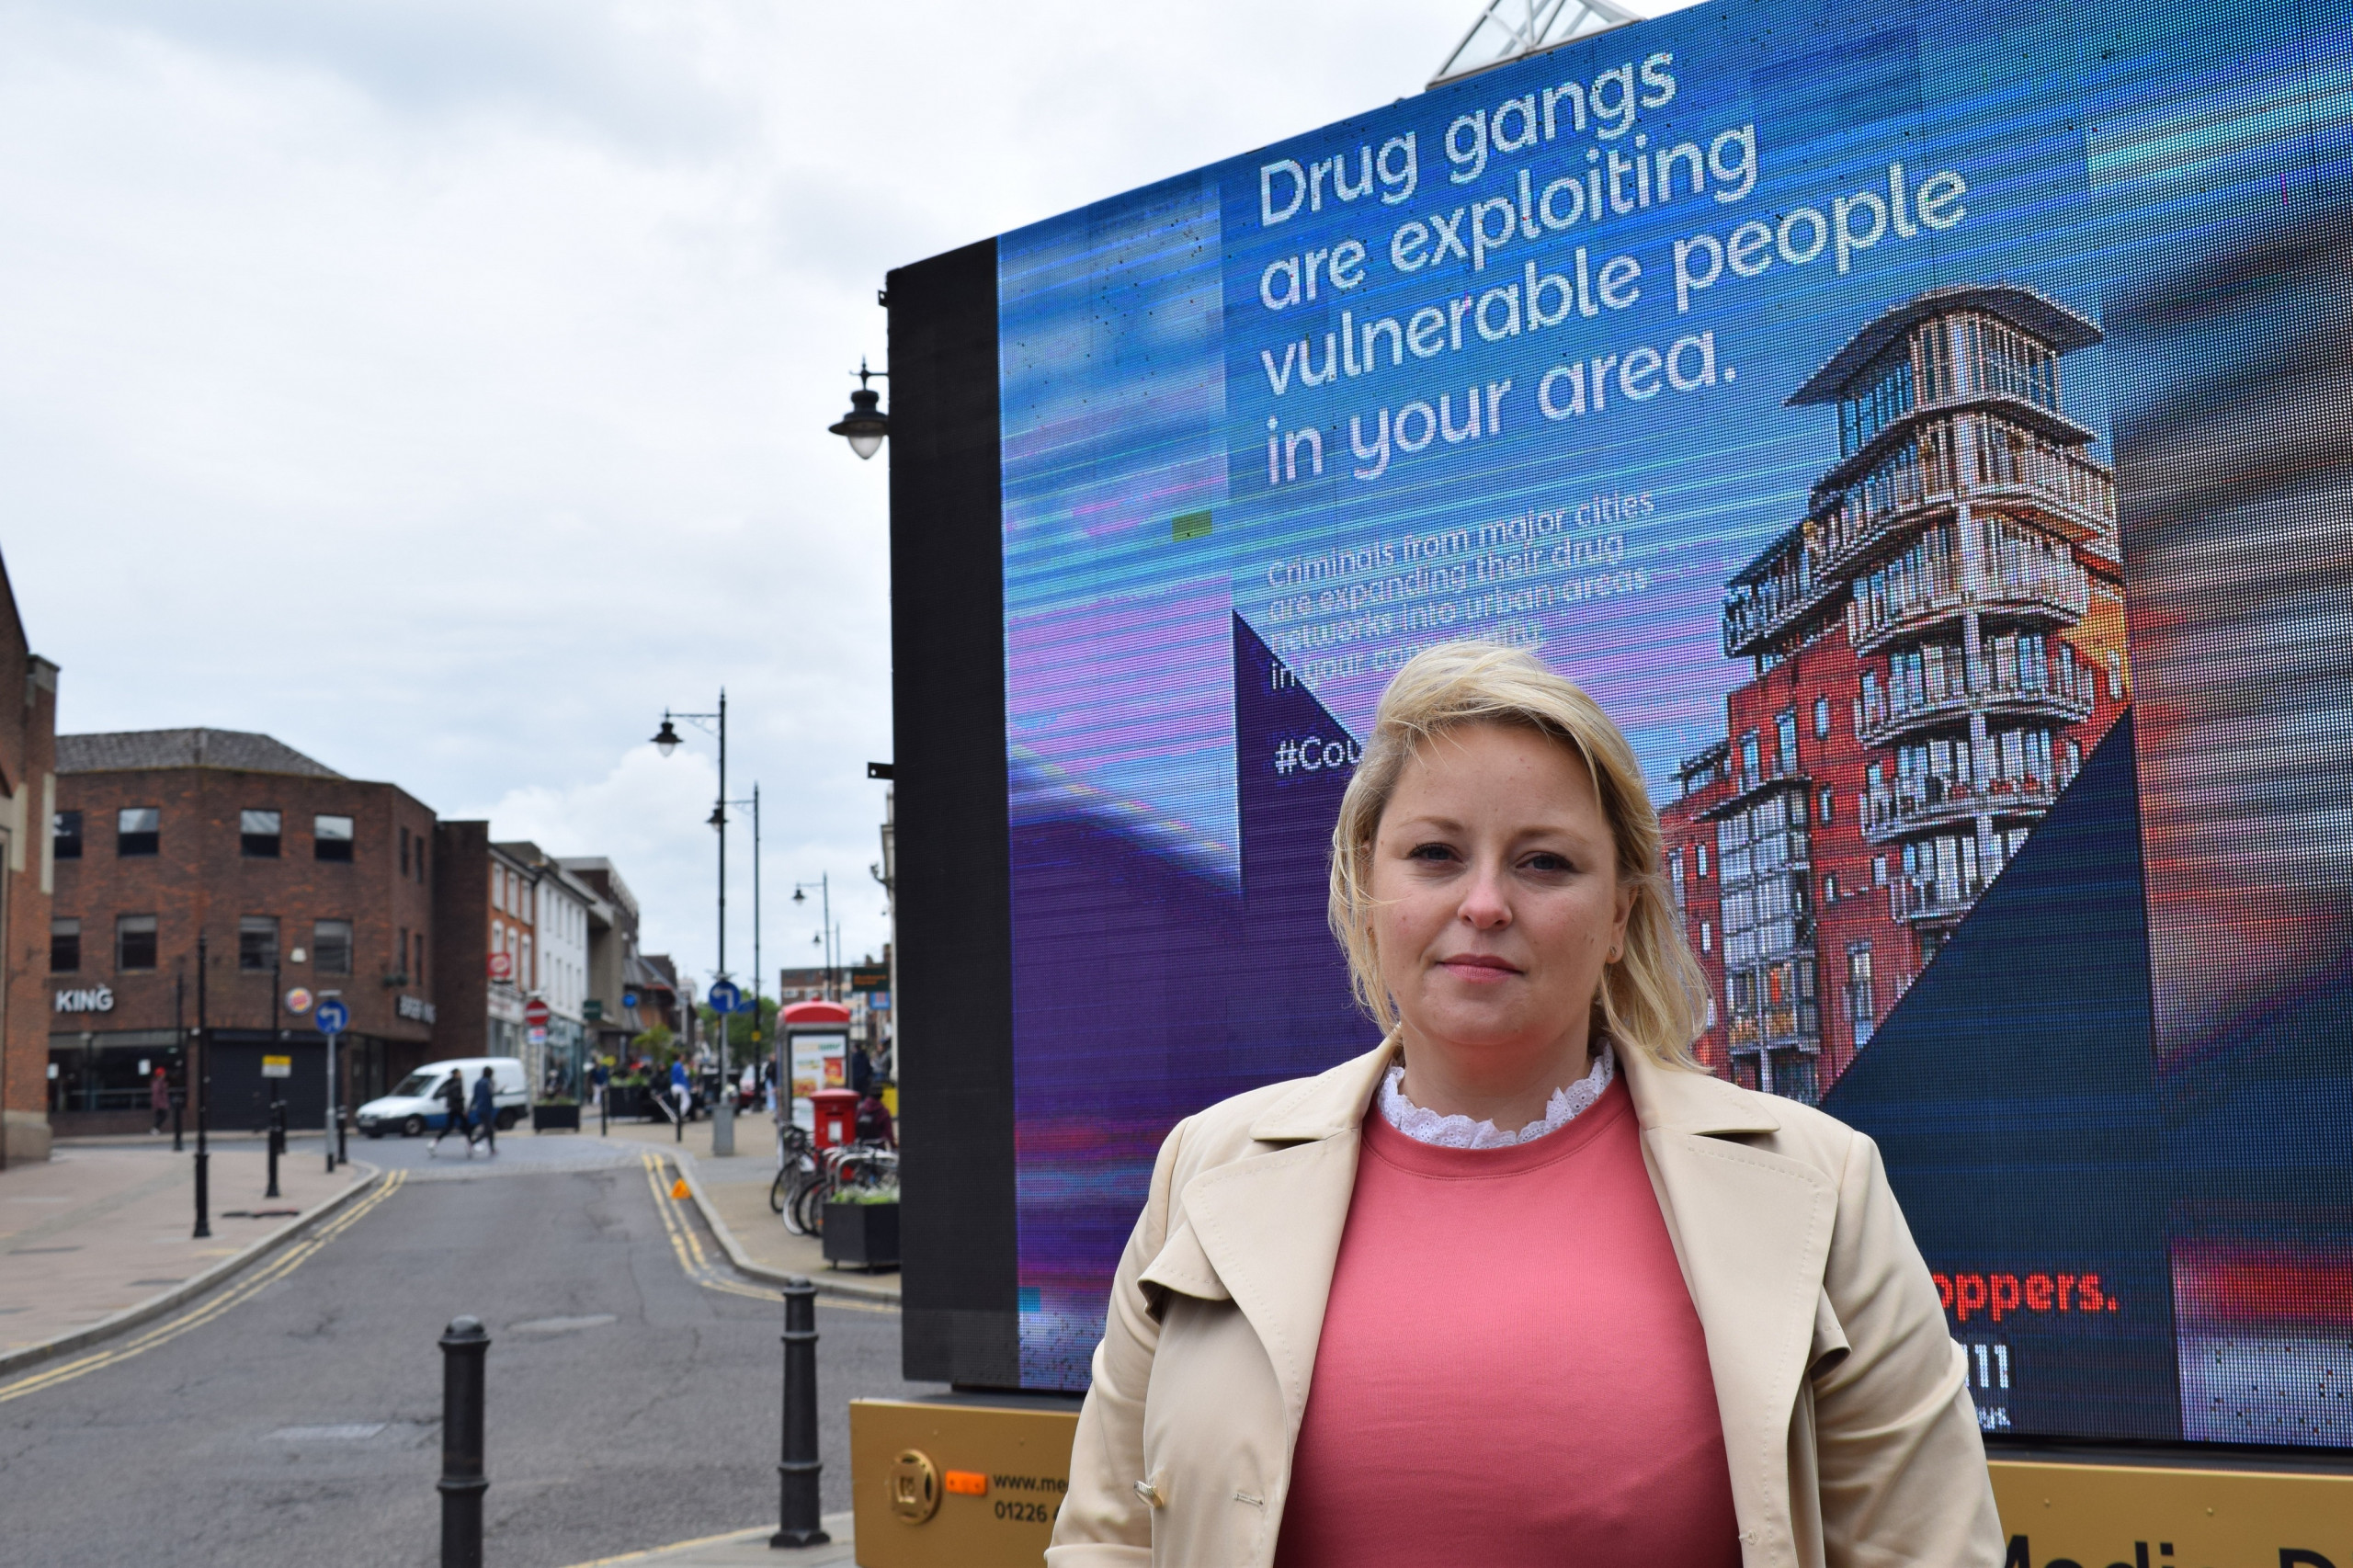 """""""We must drive criminal gangs and their drugs out of our communities in Surrey"""" – PCC Lisa Townsend hails 'county lines' crackdown"""